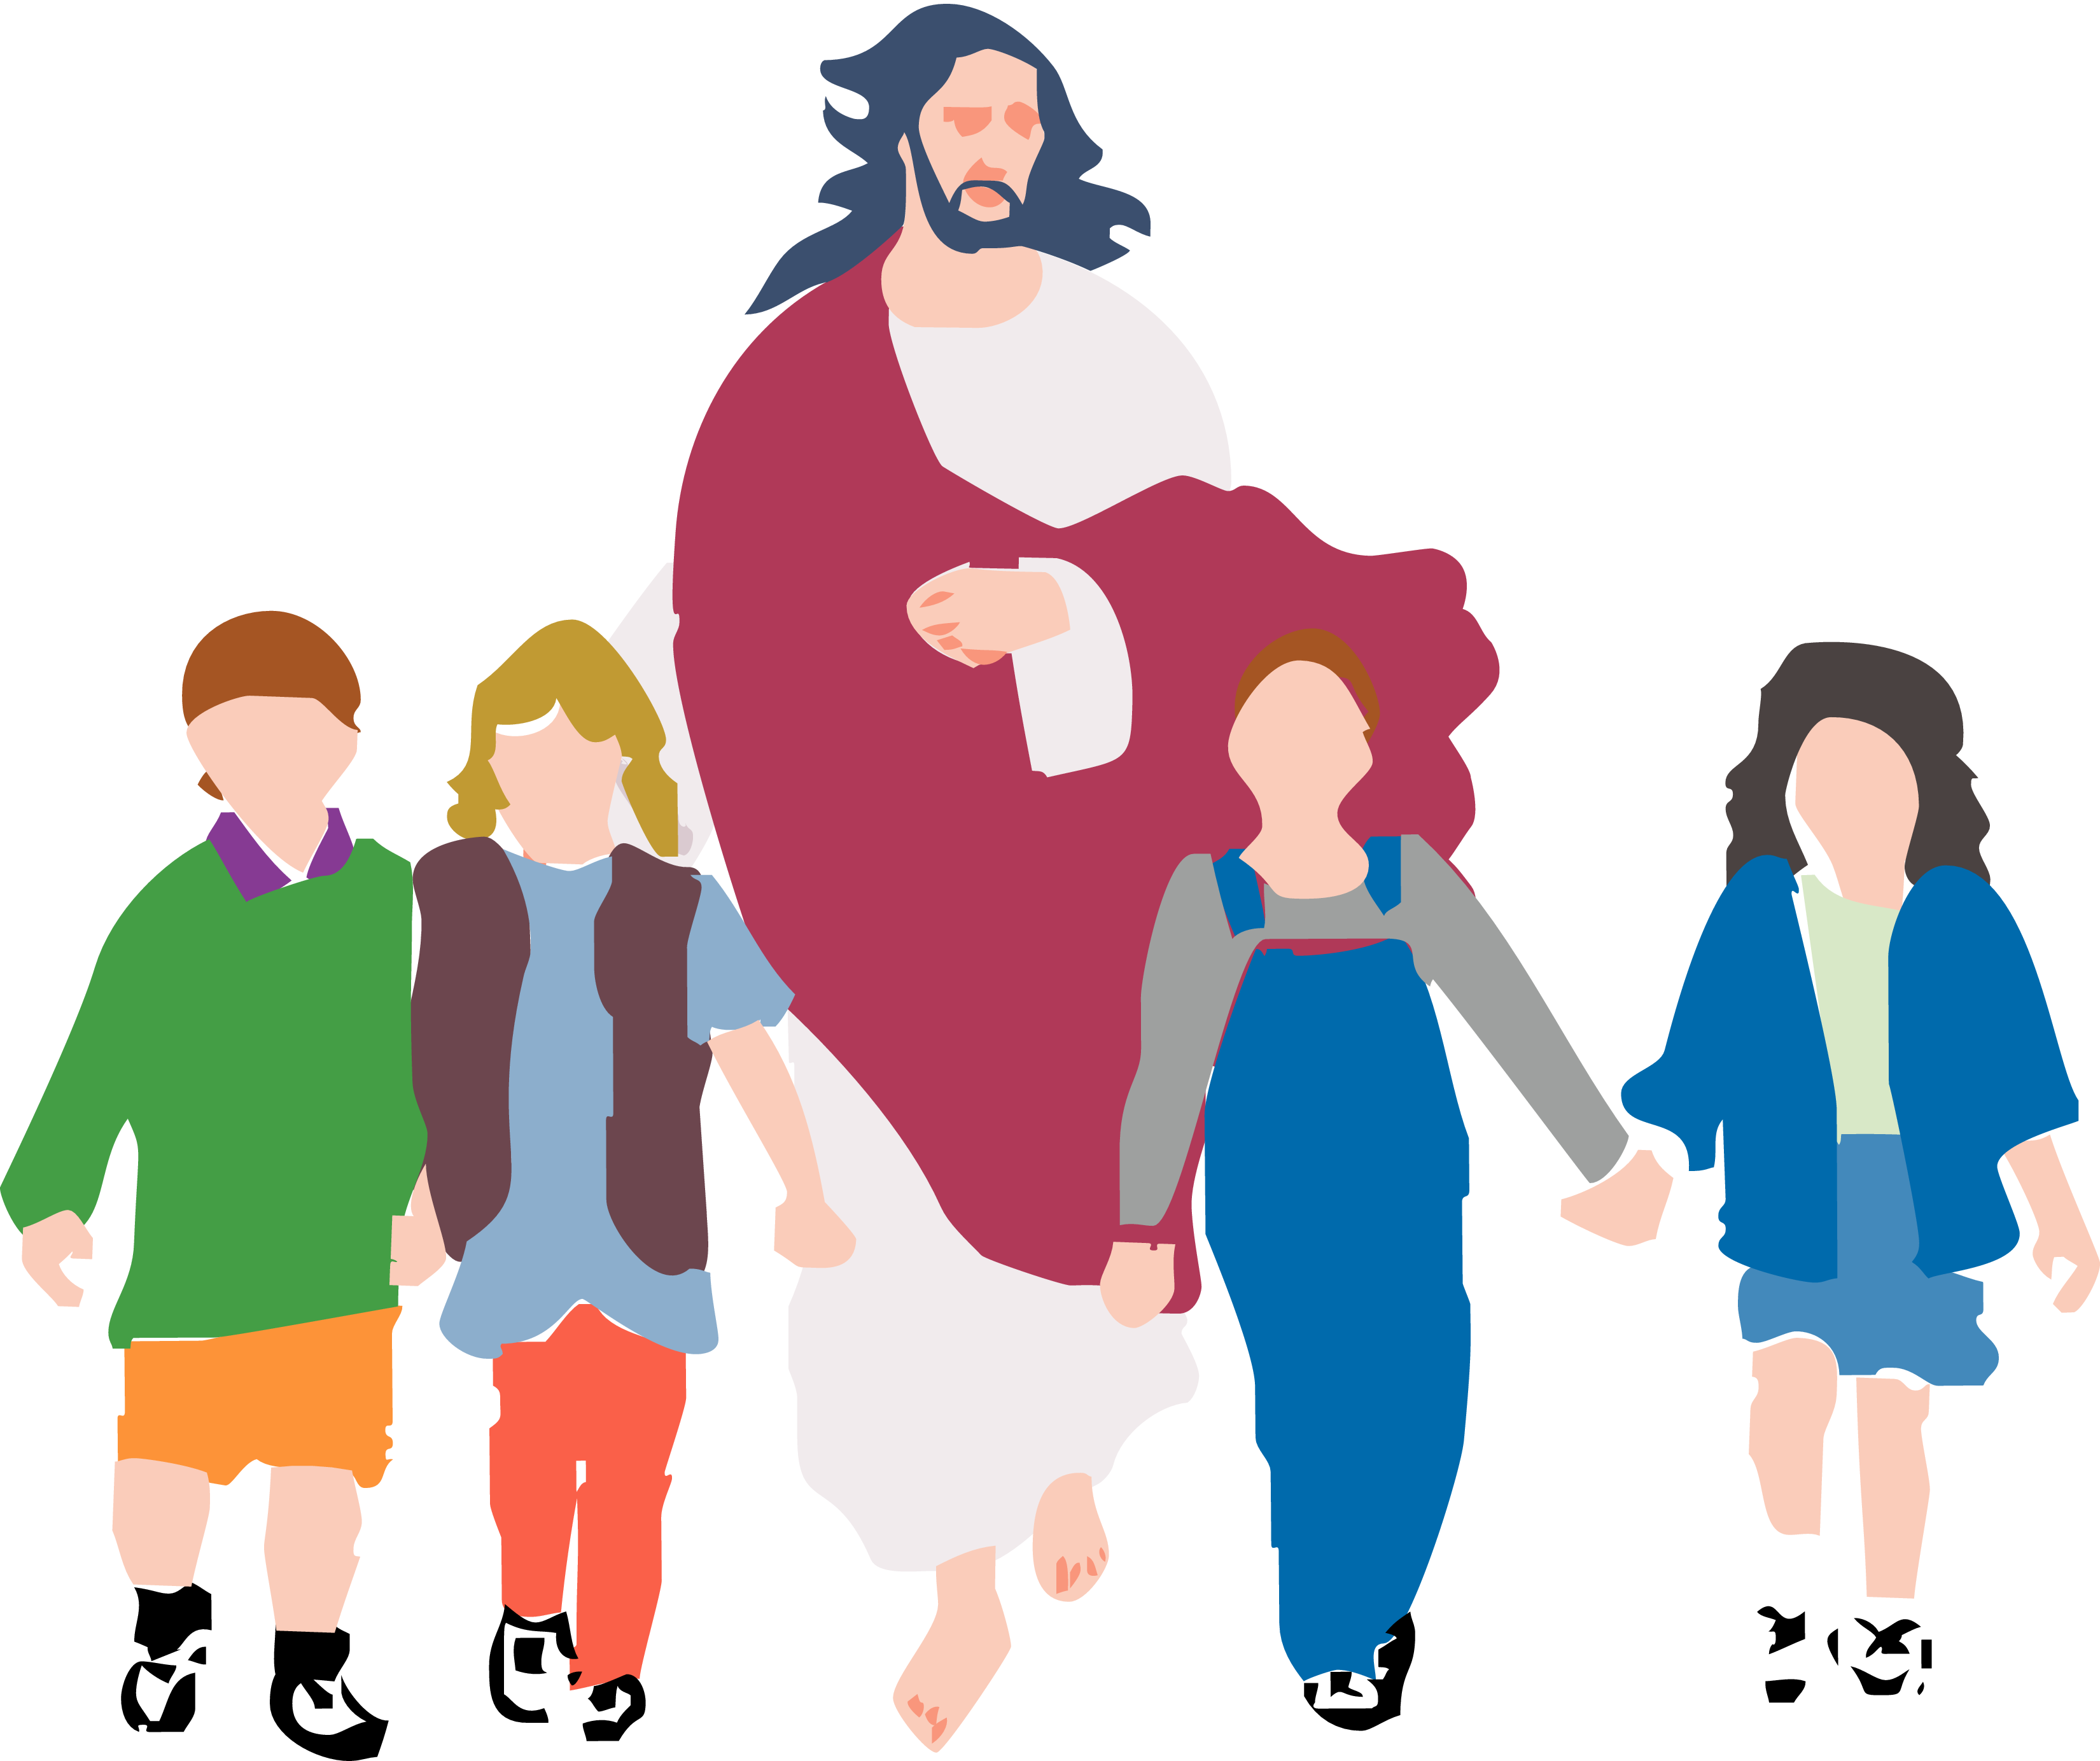 Child walking with jesus. Footsteps clipart animated